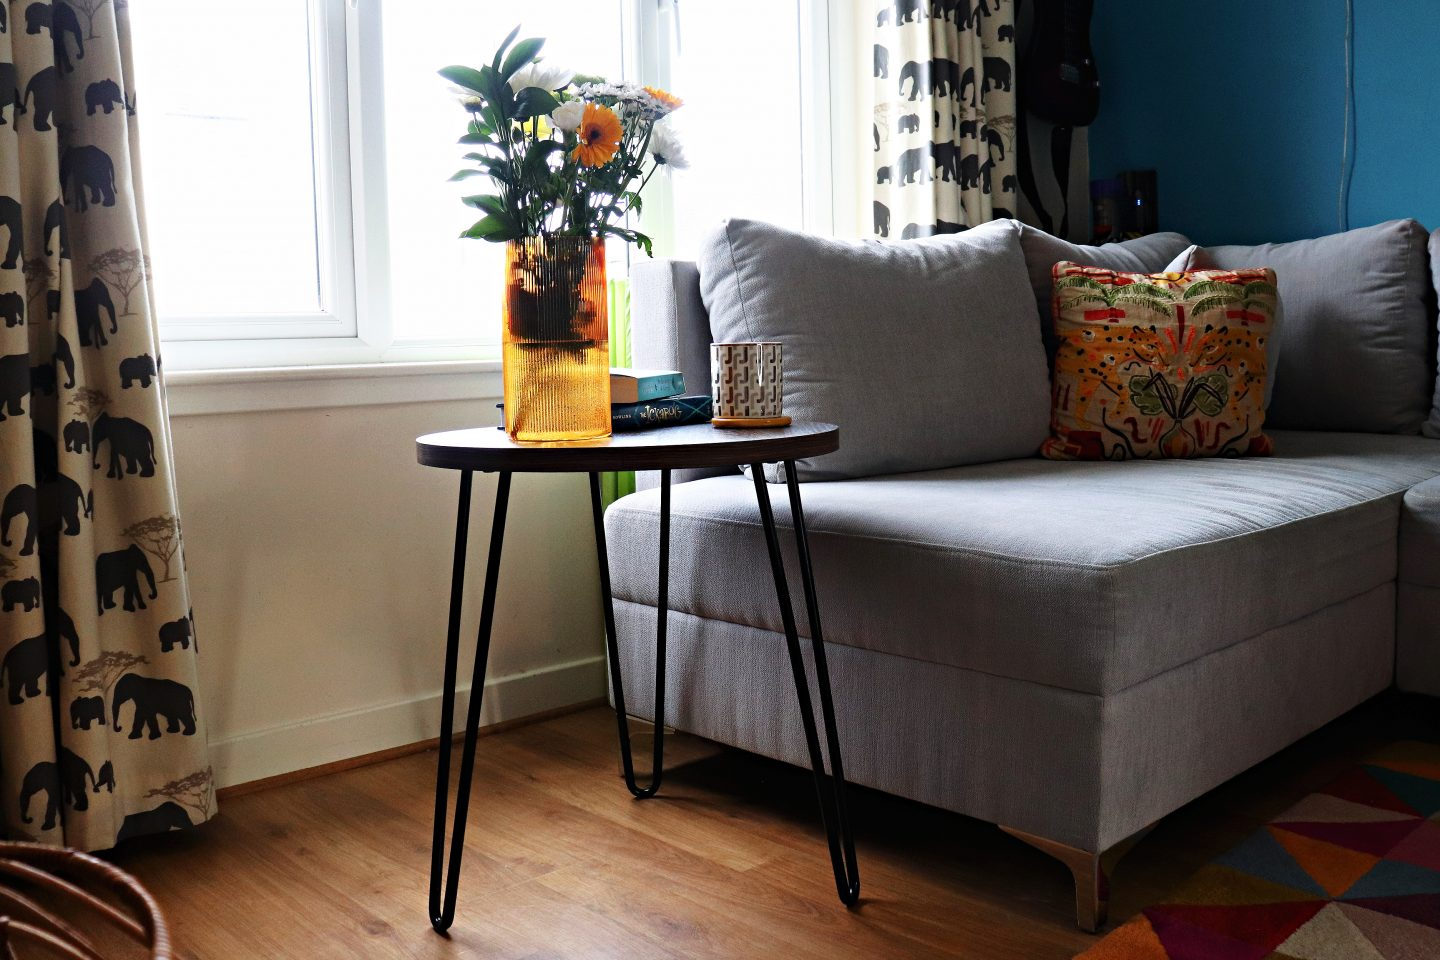 side table with vase beside sofa